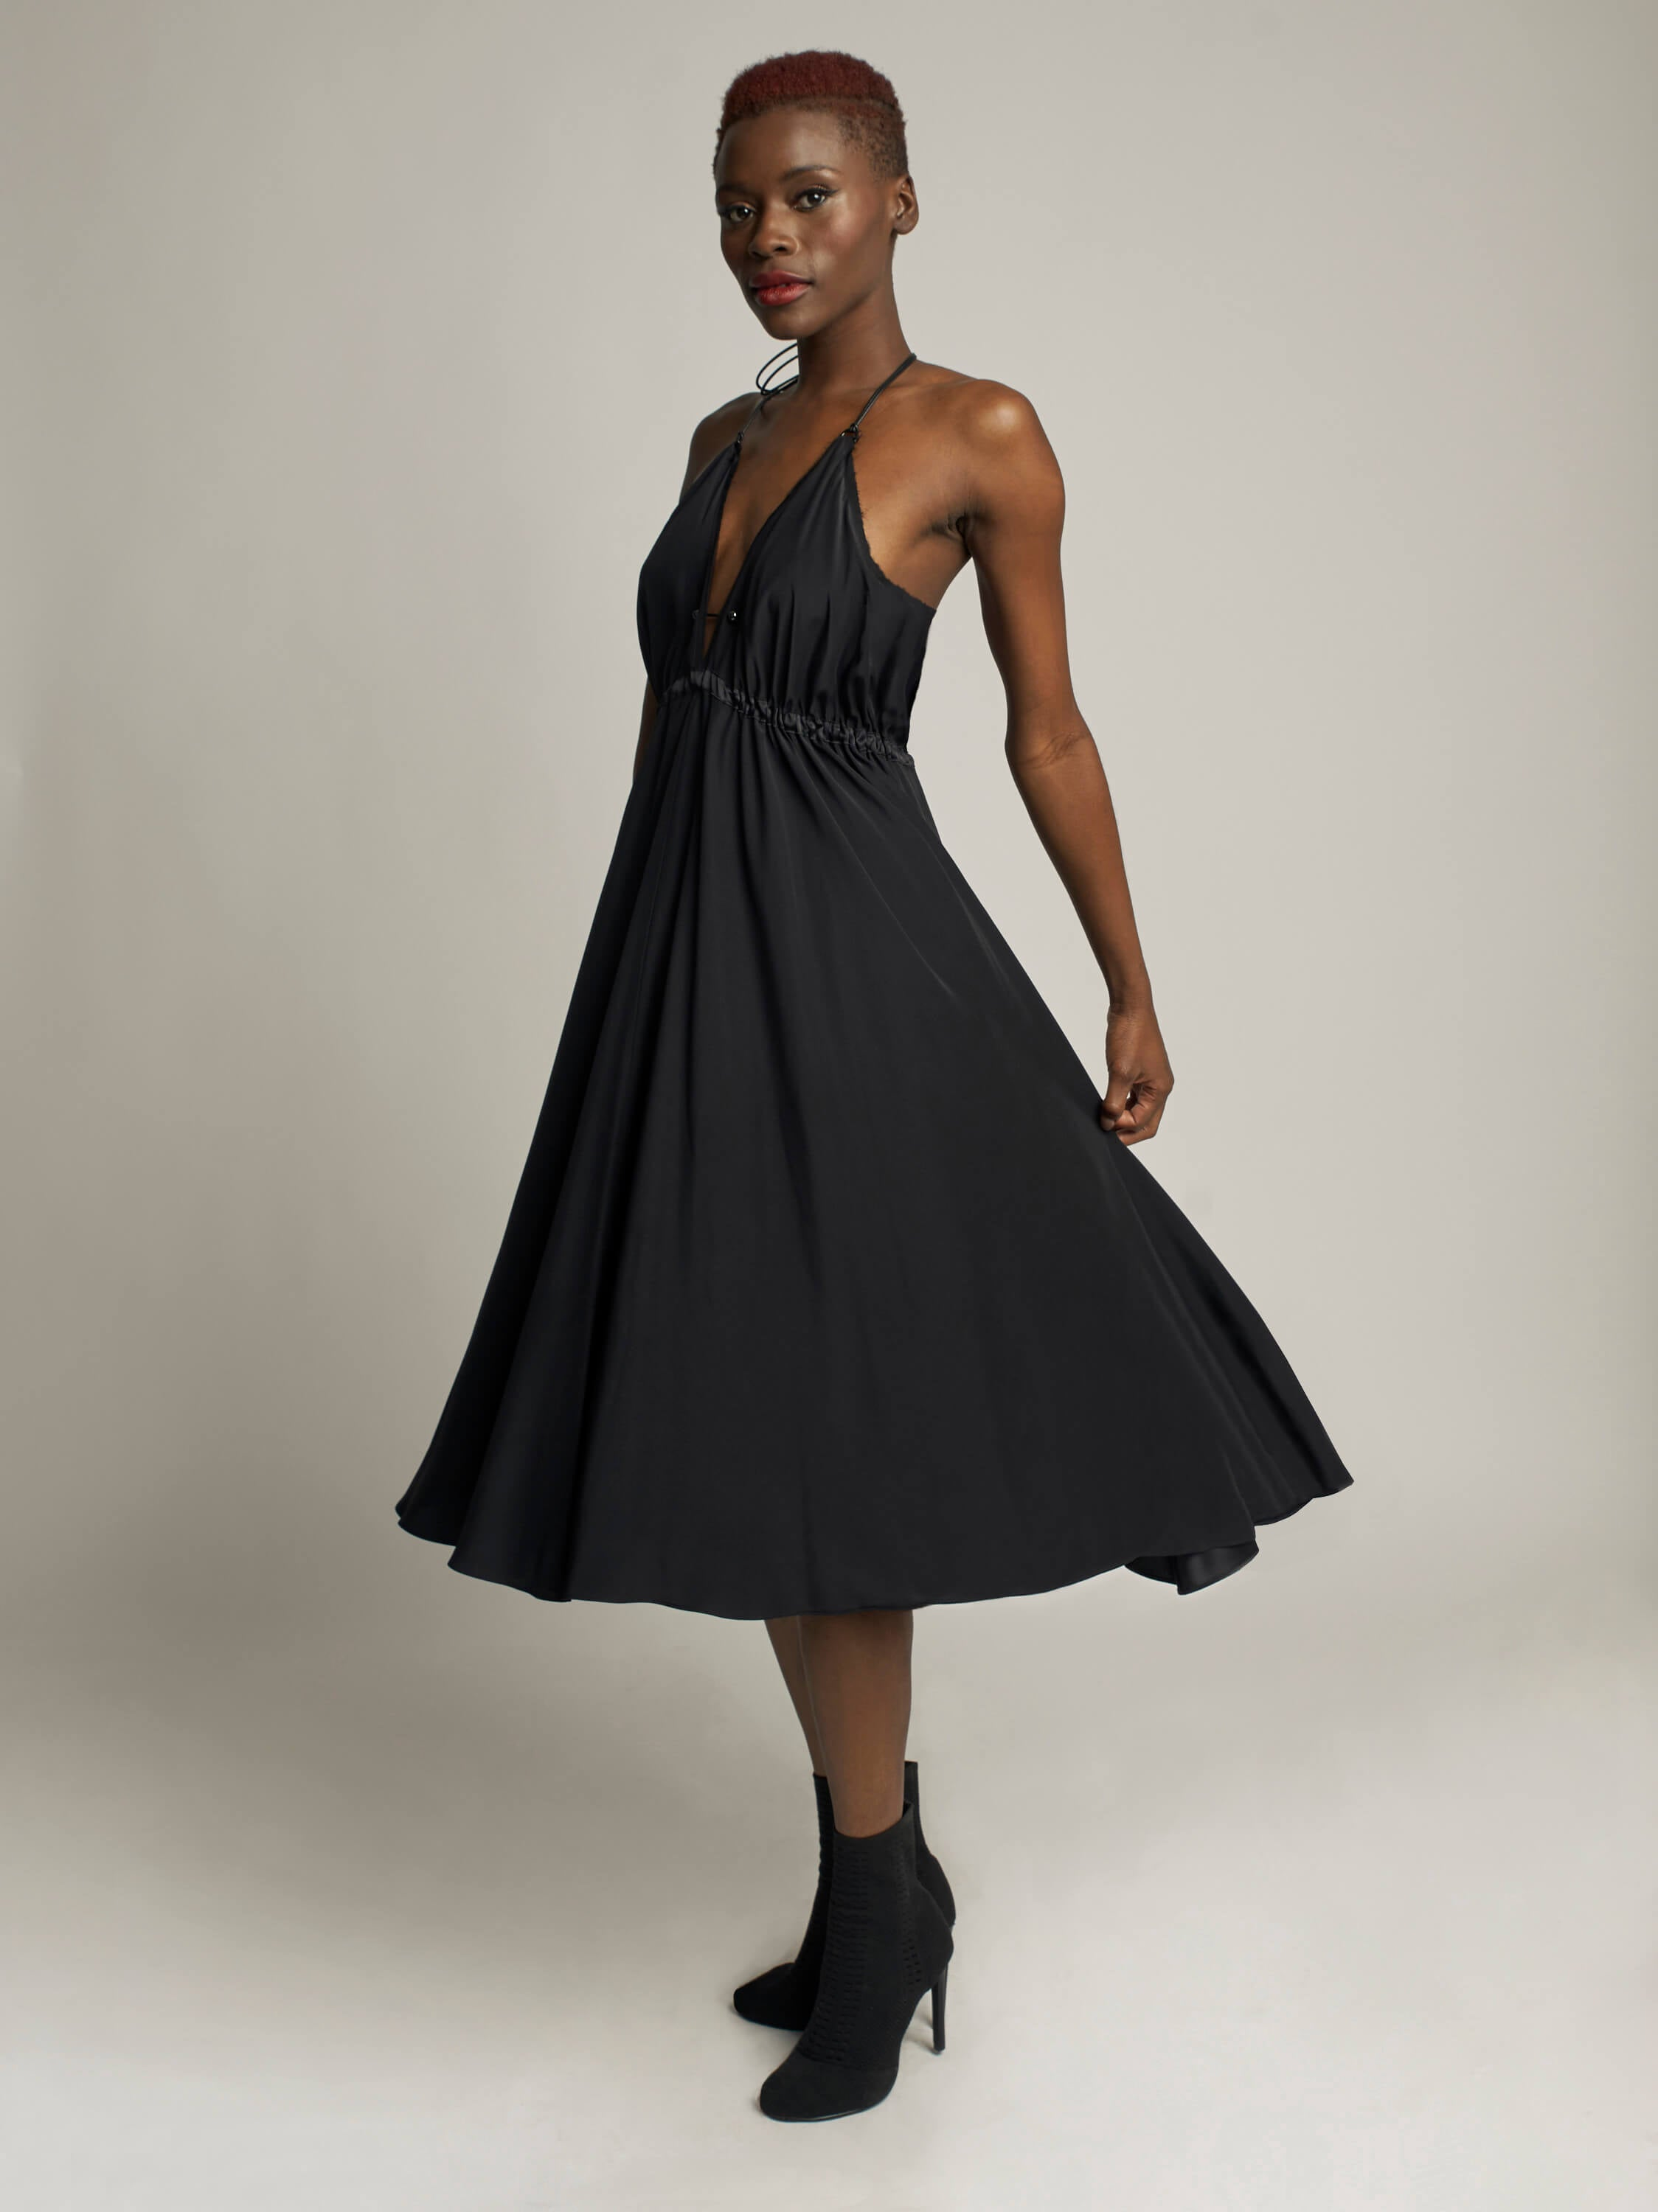 Coquette Dress, Black - Jody Tjan